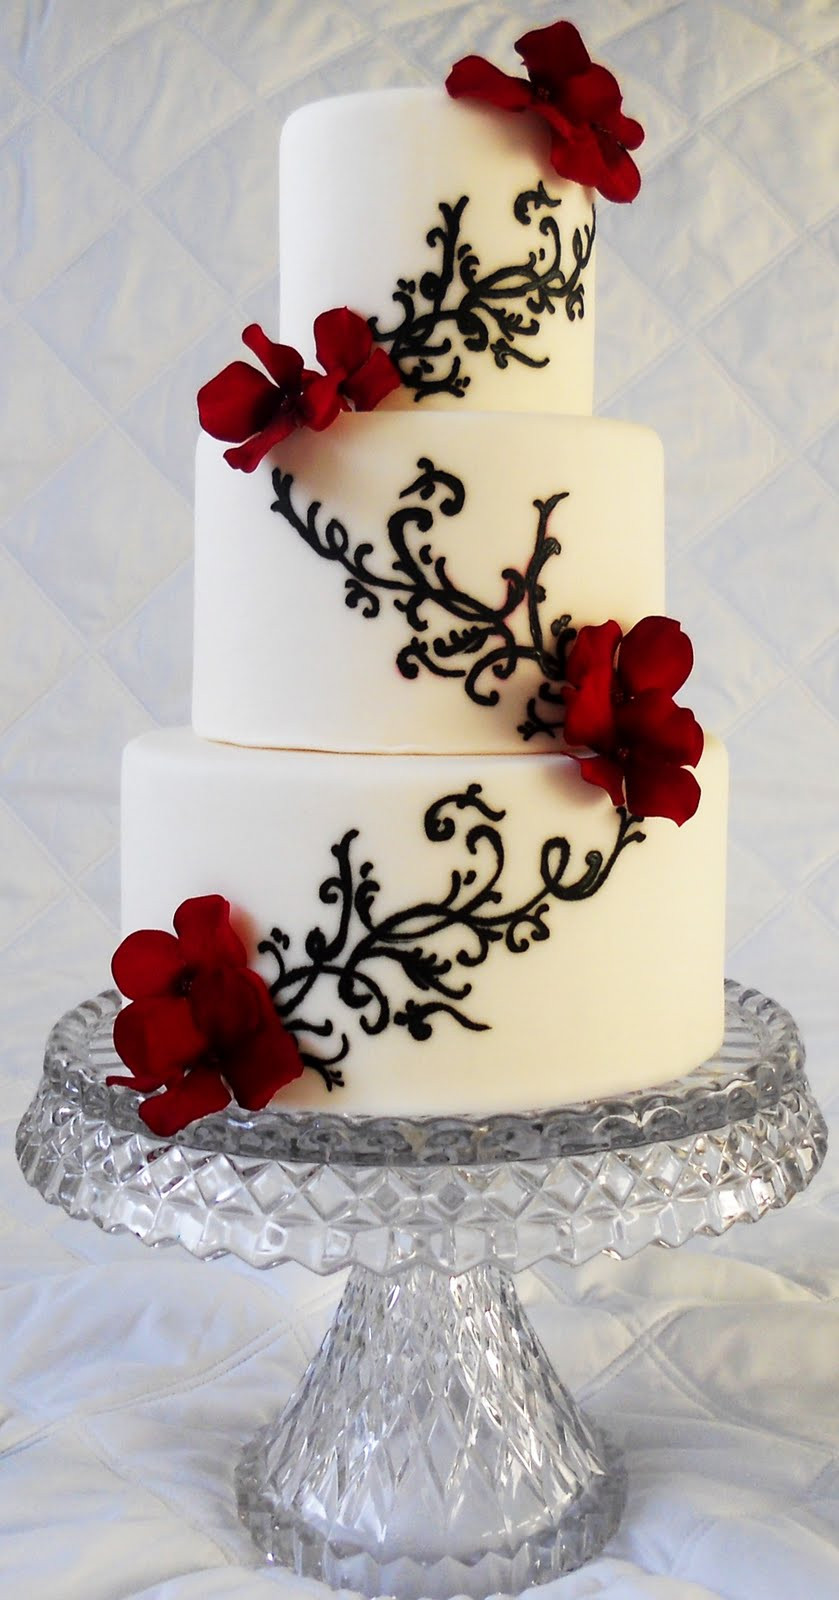 Red Black And White Wedding Cake  Memorable Wedding Find the Best Red Black and White